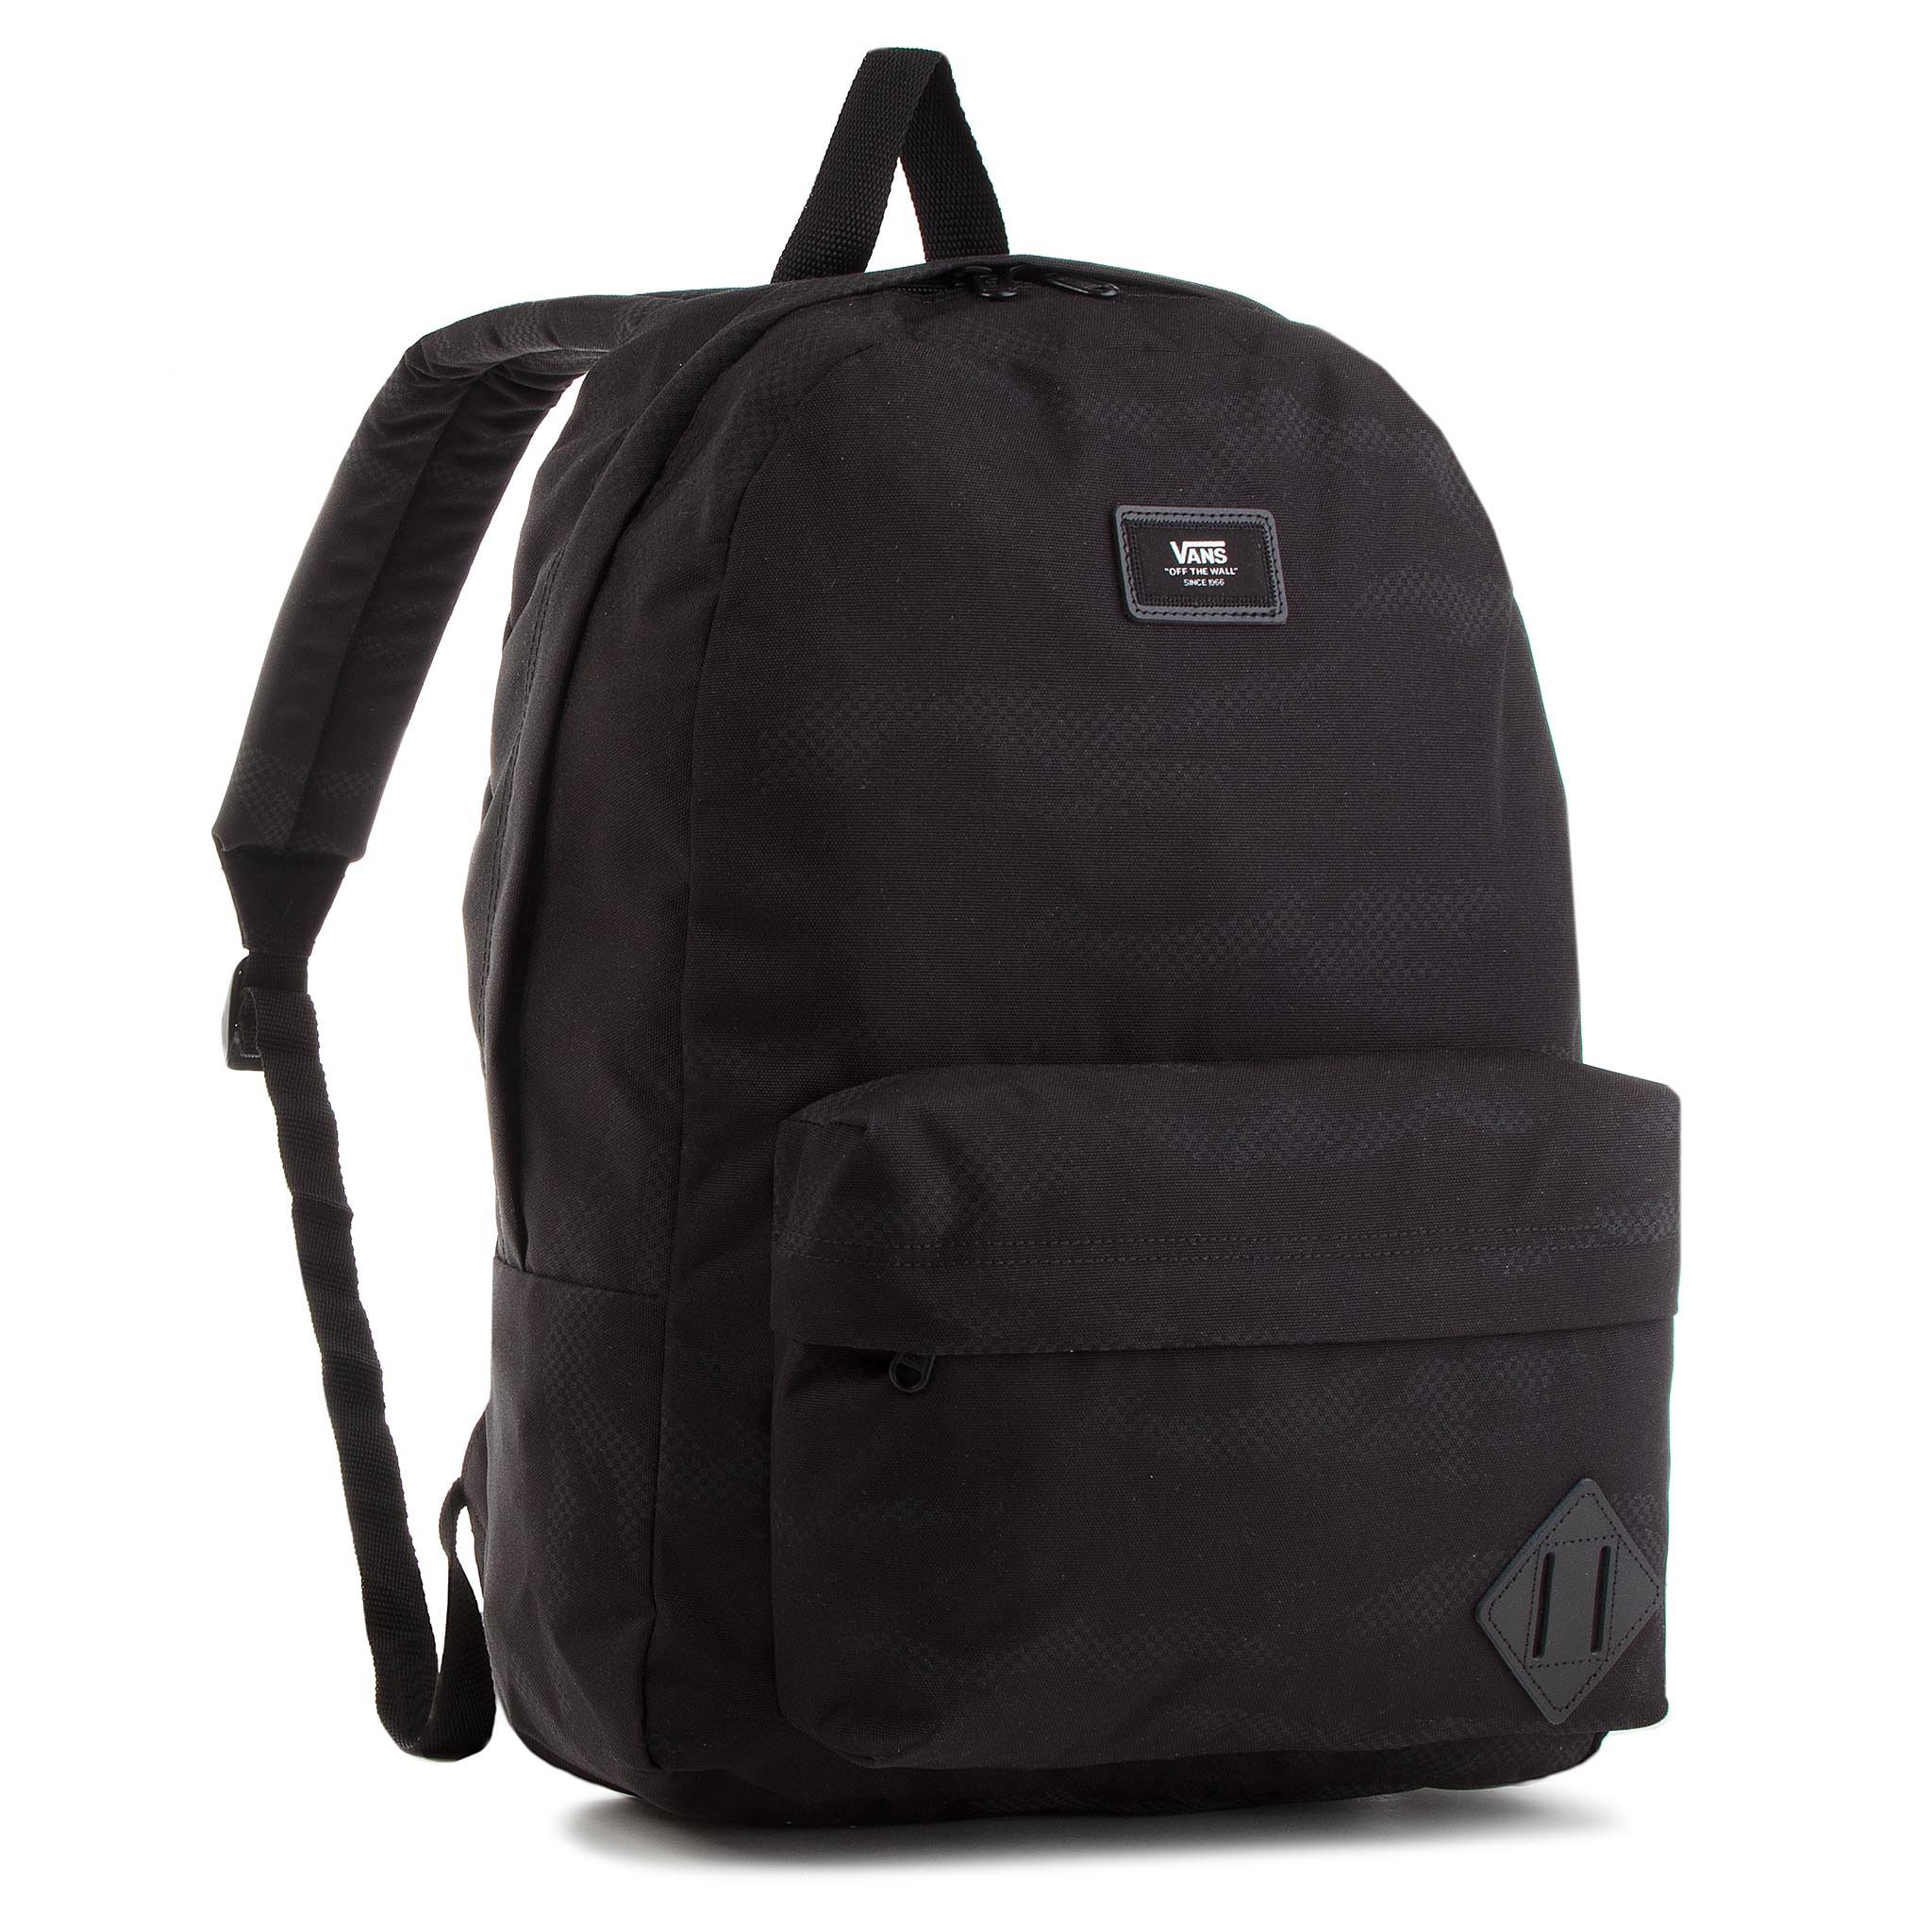 Vans batoh OLD SKOOL II BACKPACK black